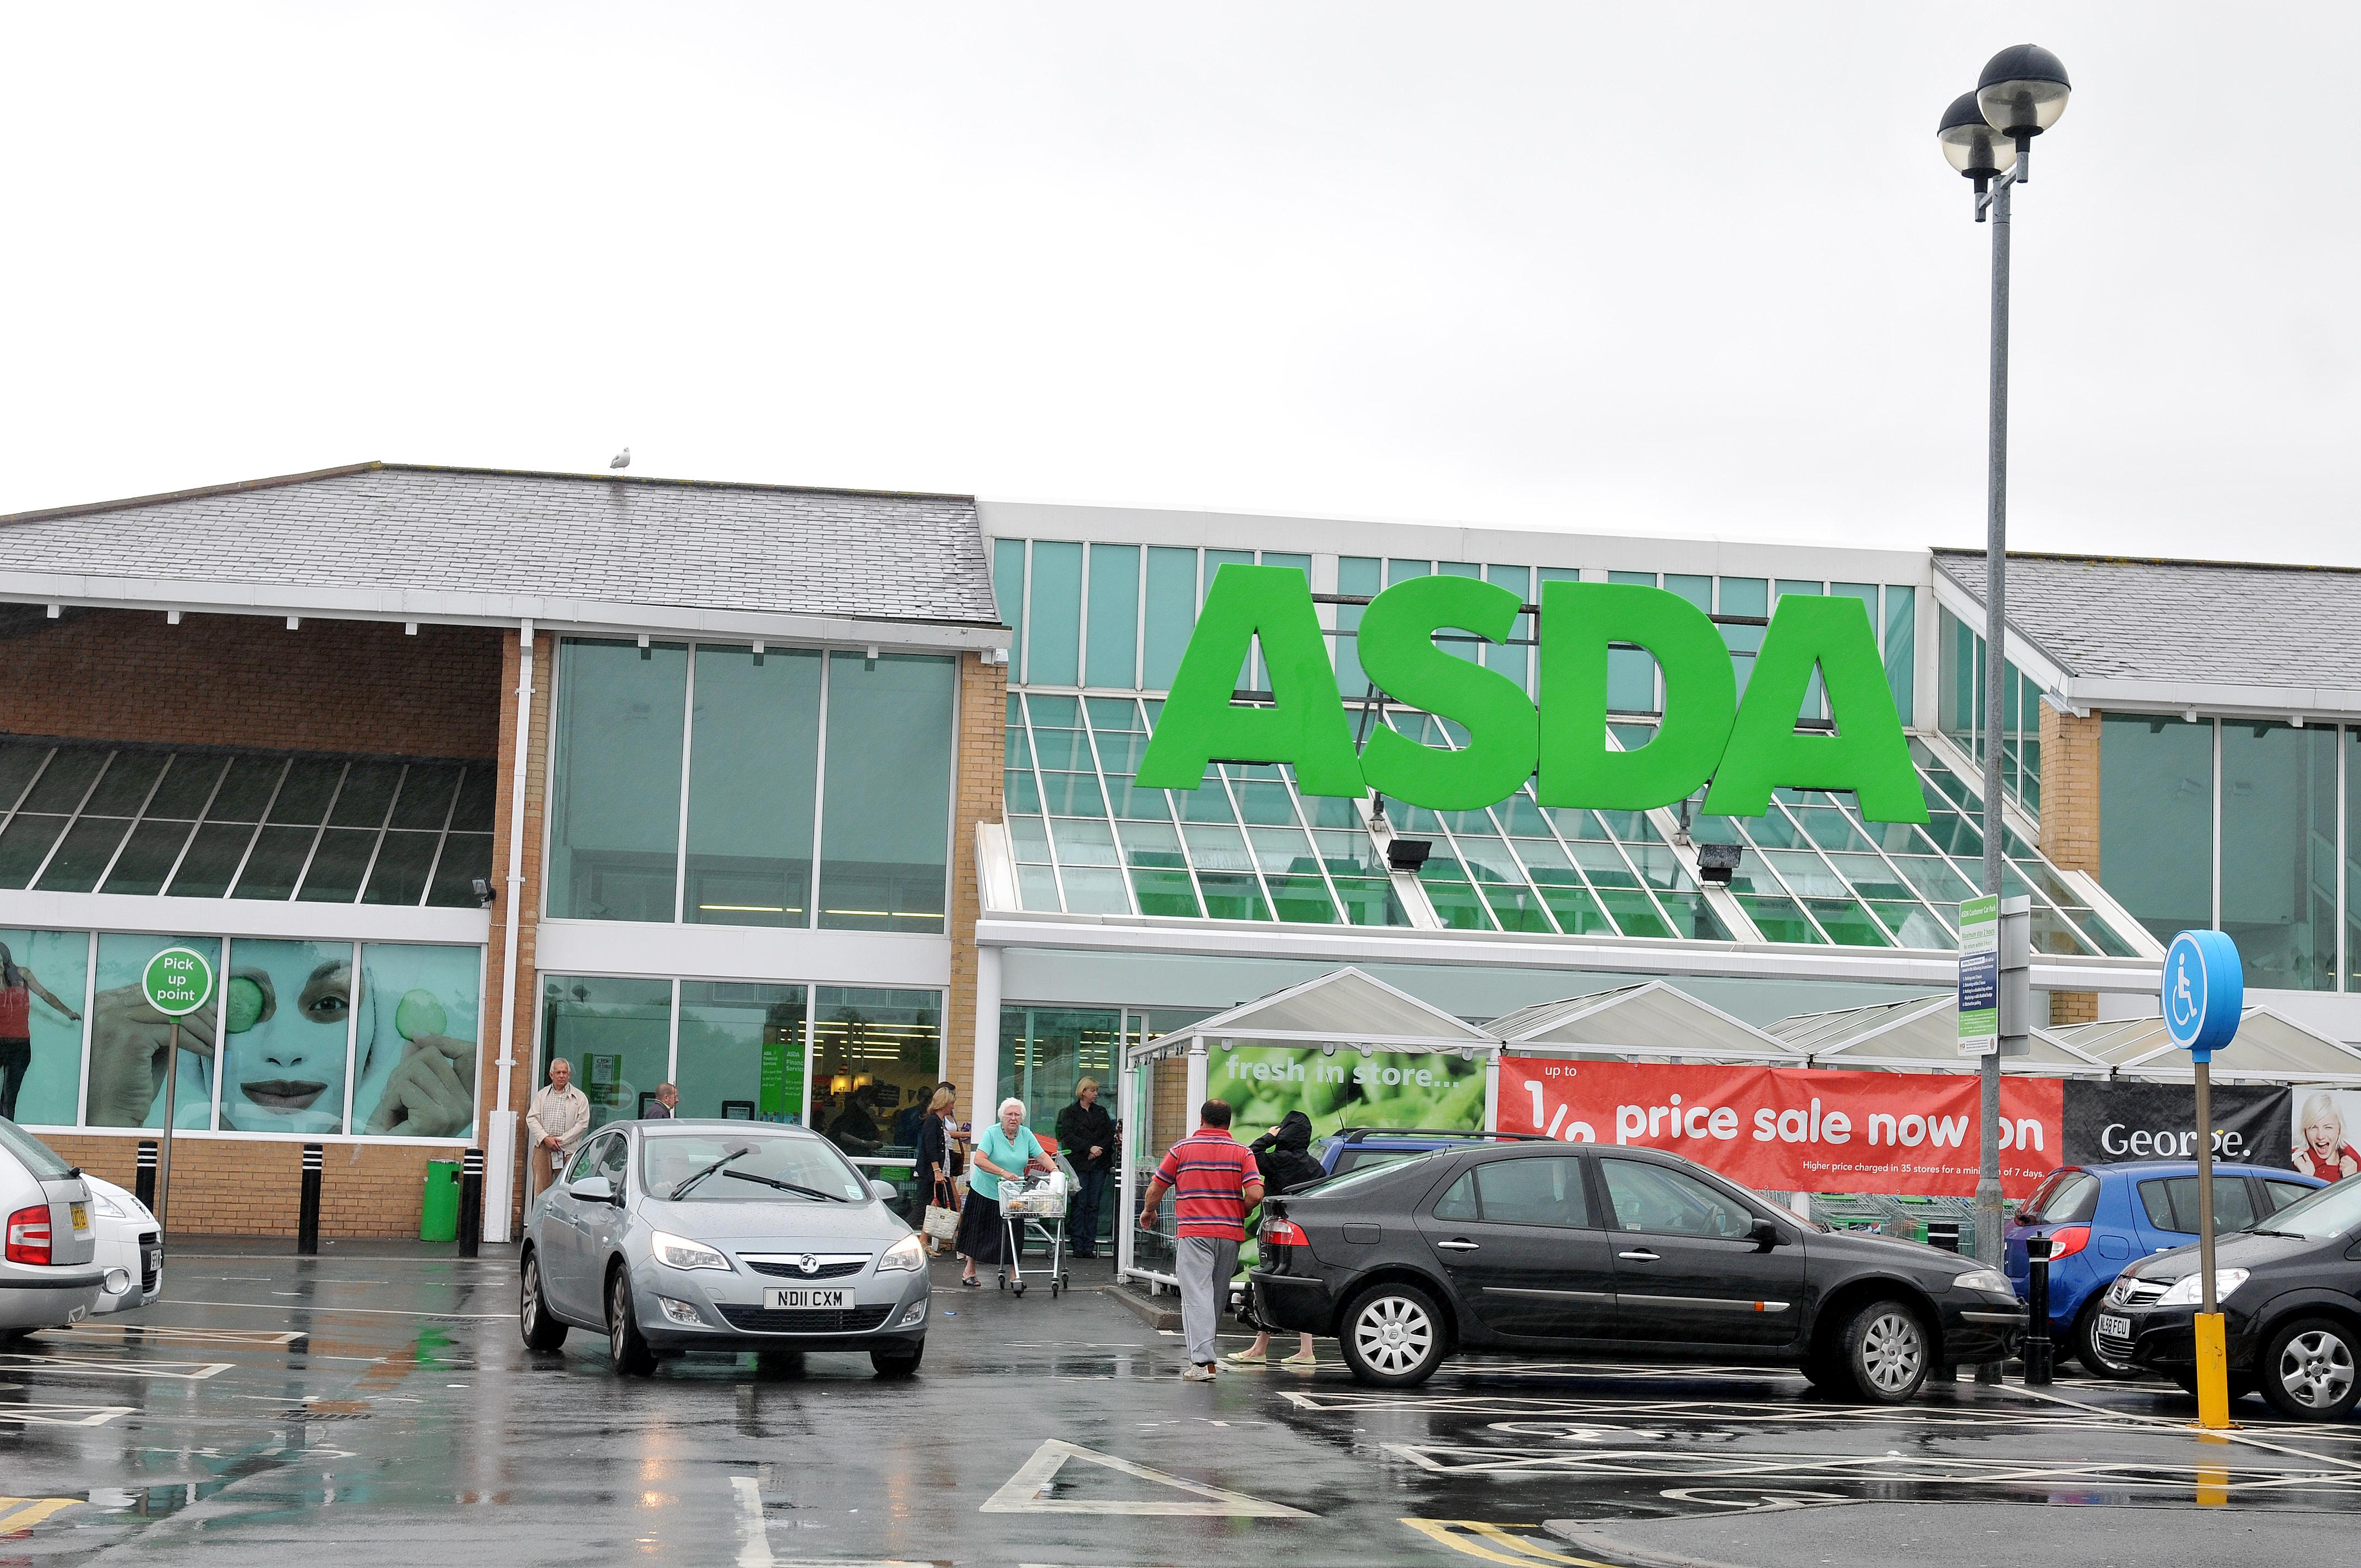 Bank Holiday supermarket opening times in Hartlepool: hours